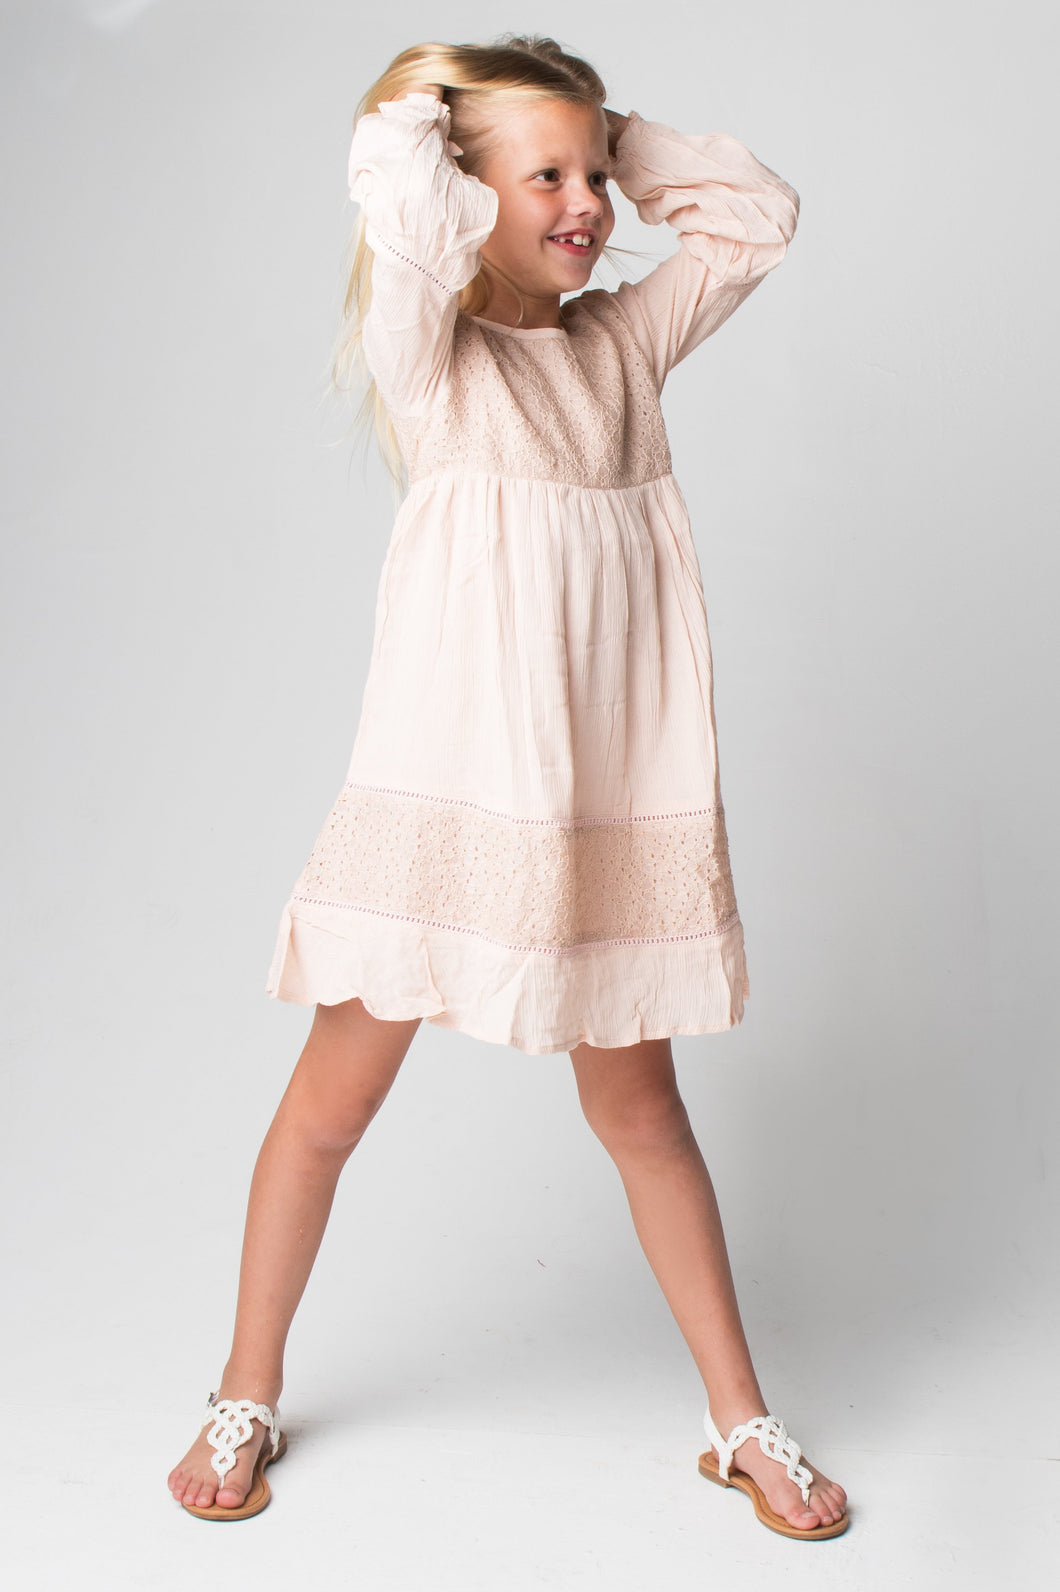 Blush Lace Detail Dress - Kids Clothing, Dress - Girls Dress, Yo Baby Online - Yo Baby